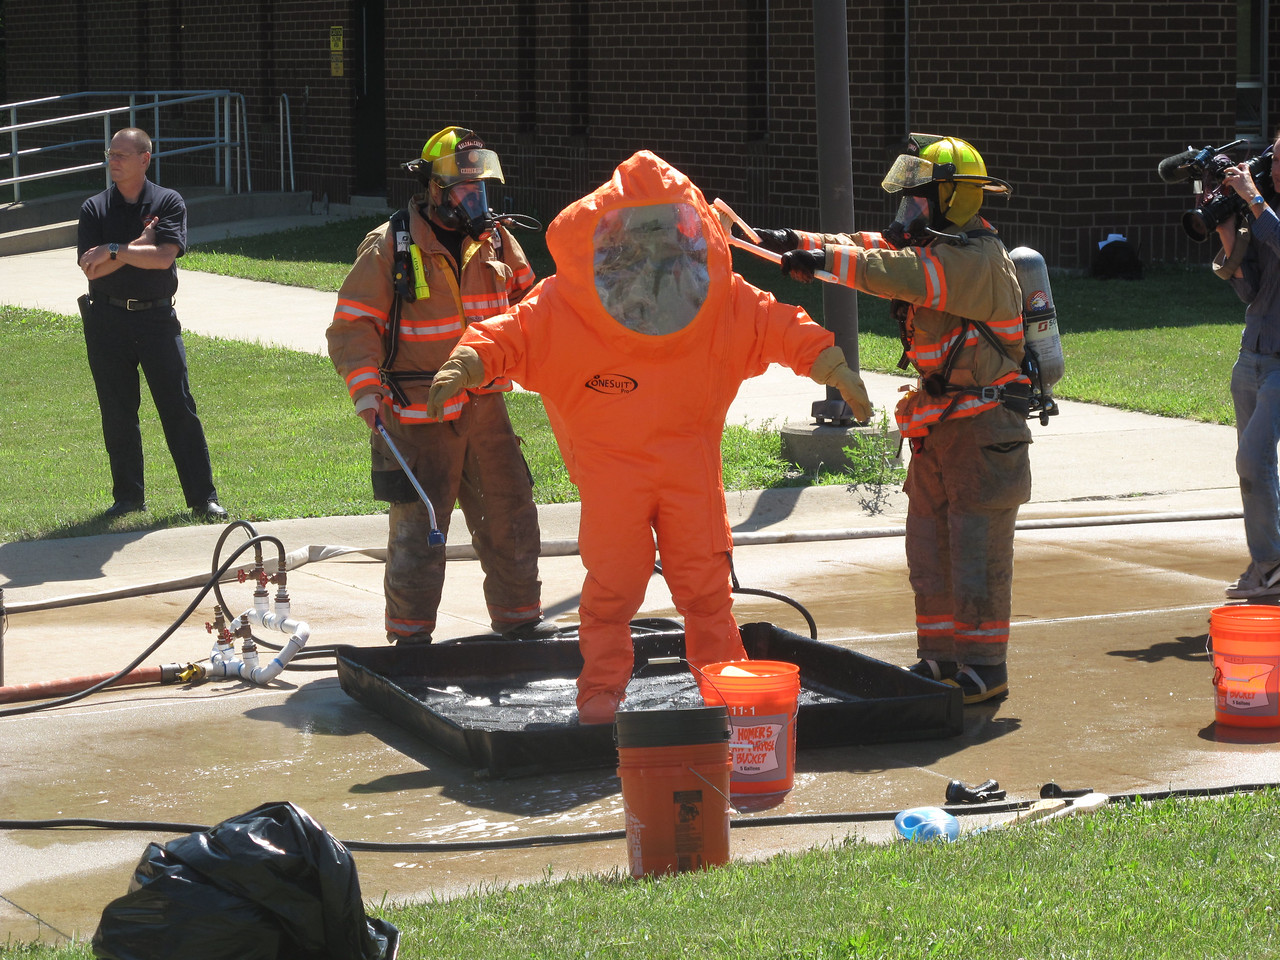 BOB FINNAN / GAZETTE A hazardous materials worker is scrubbed and hosed down after coming from the mock chlorine spill at the Liverpool Waste Water Treatment Plant Saturday during the mass casualty incident.